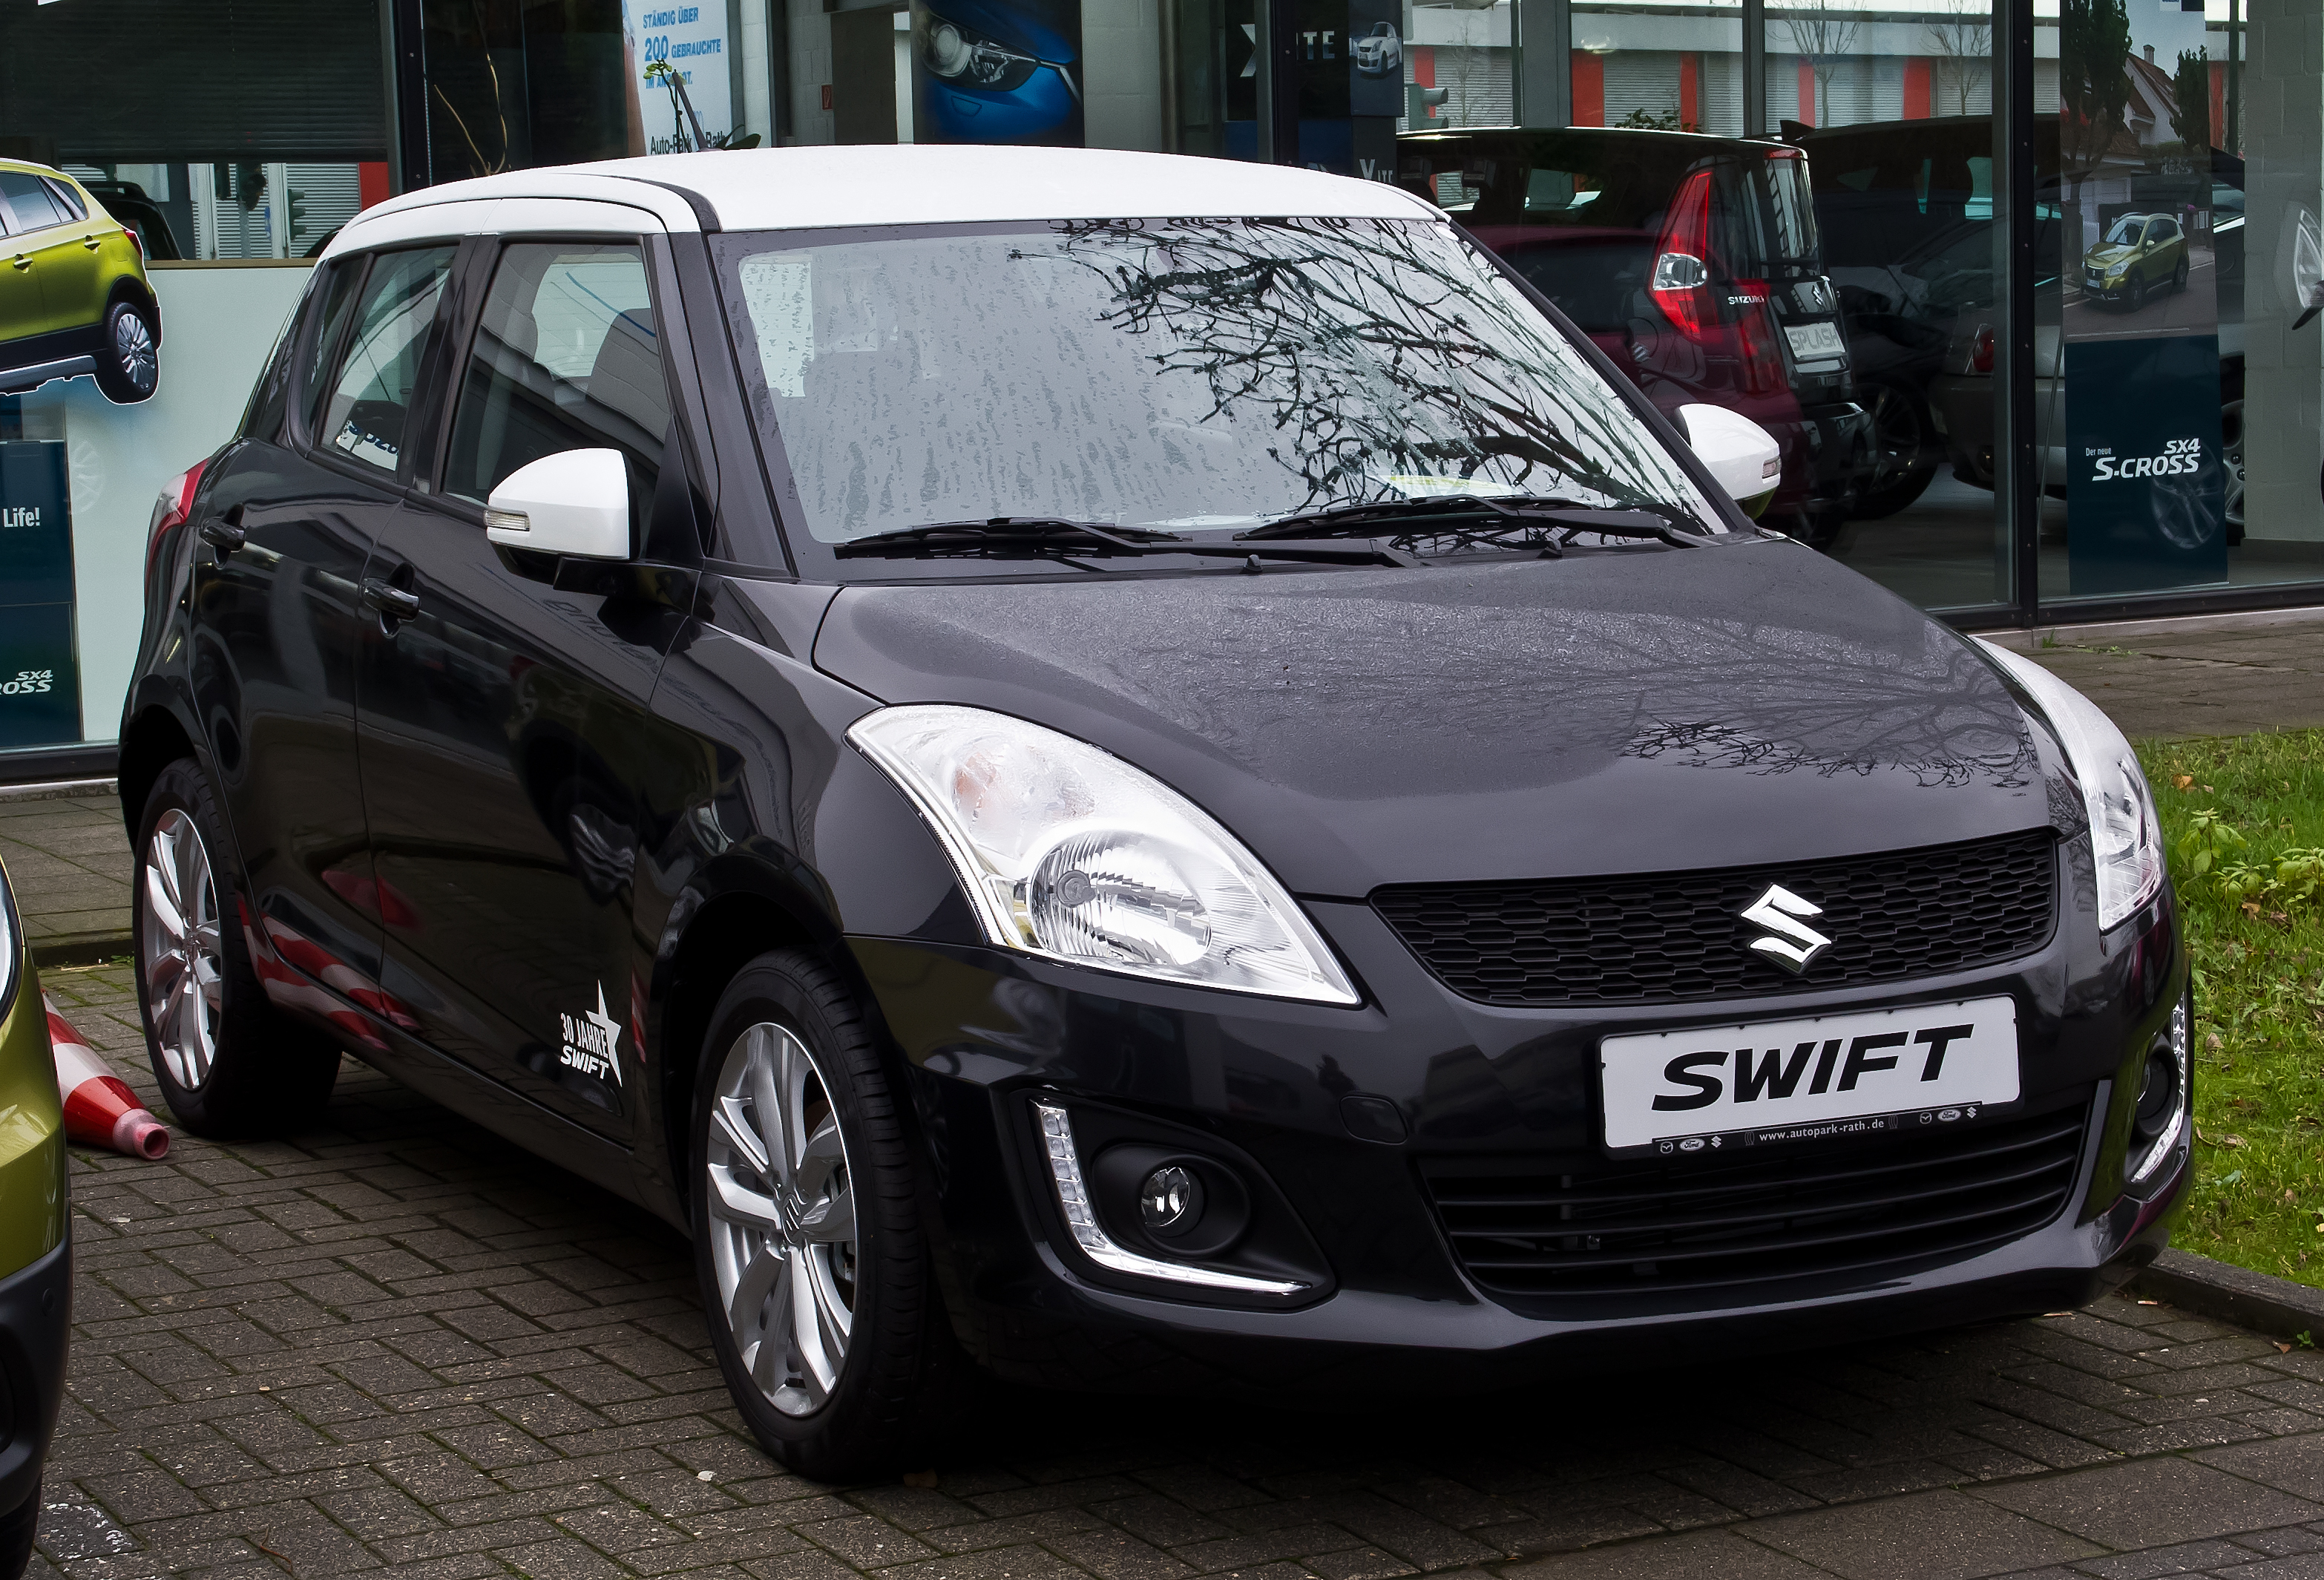 Suzuki Swift 1.2 2013 photo - 2